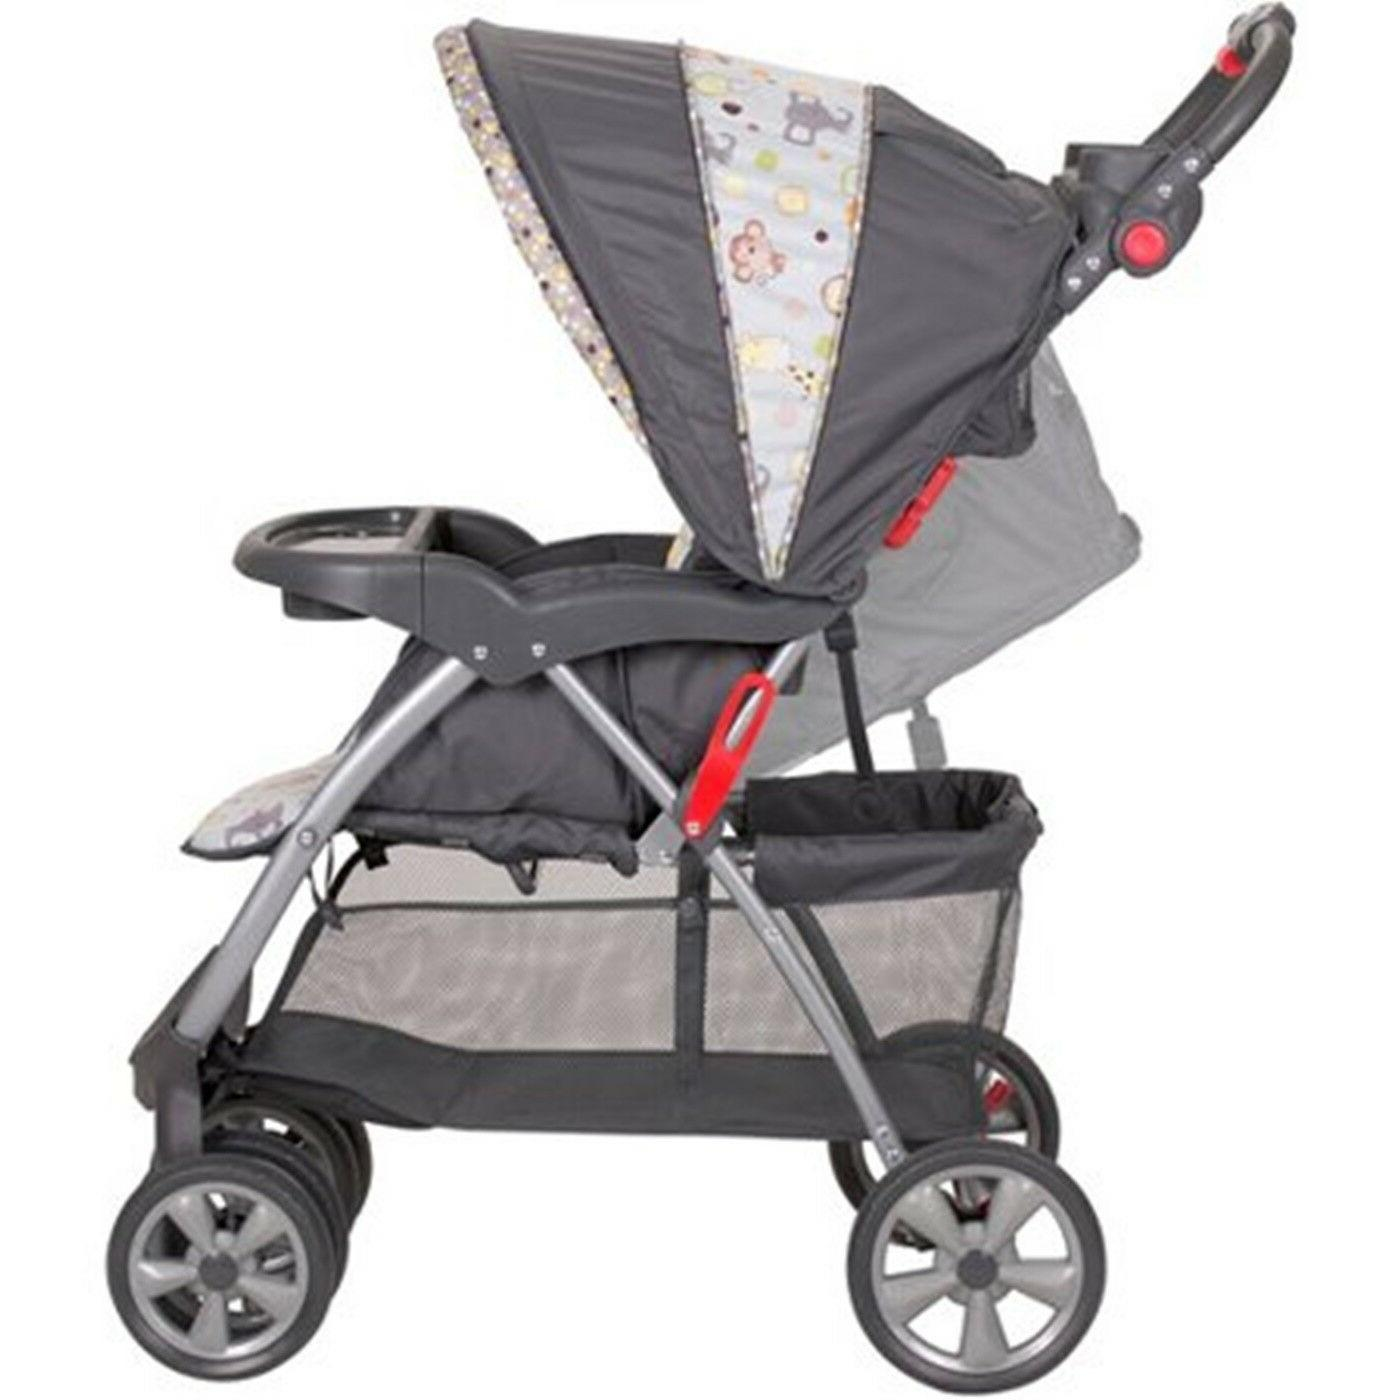 Stroller And Baby Trend Travel System Car Can